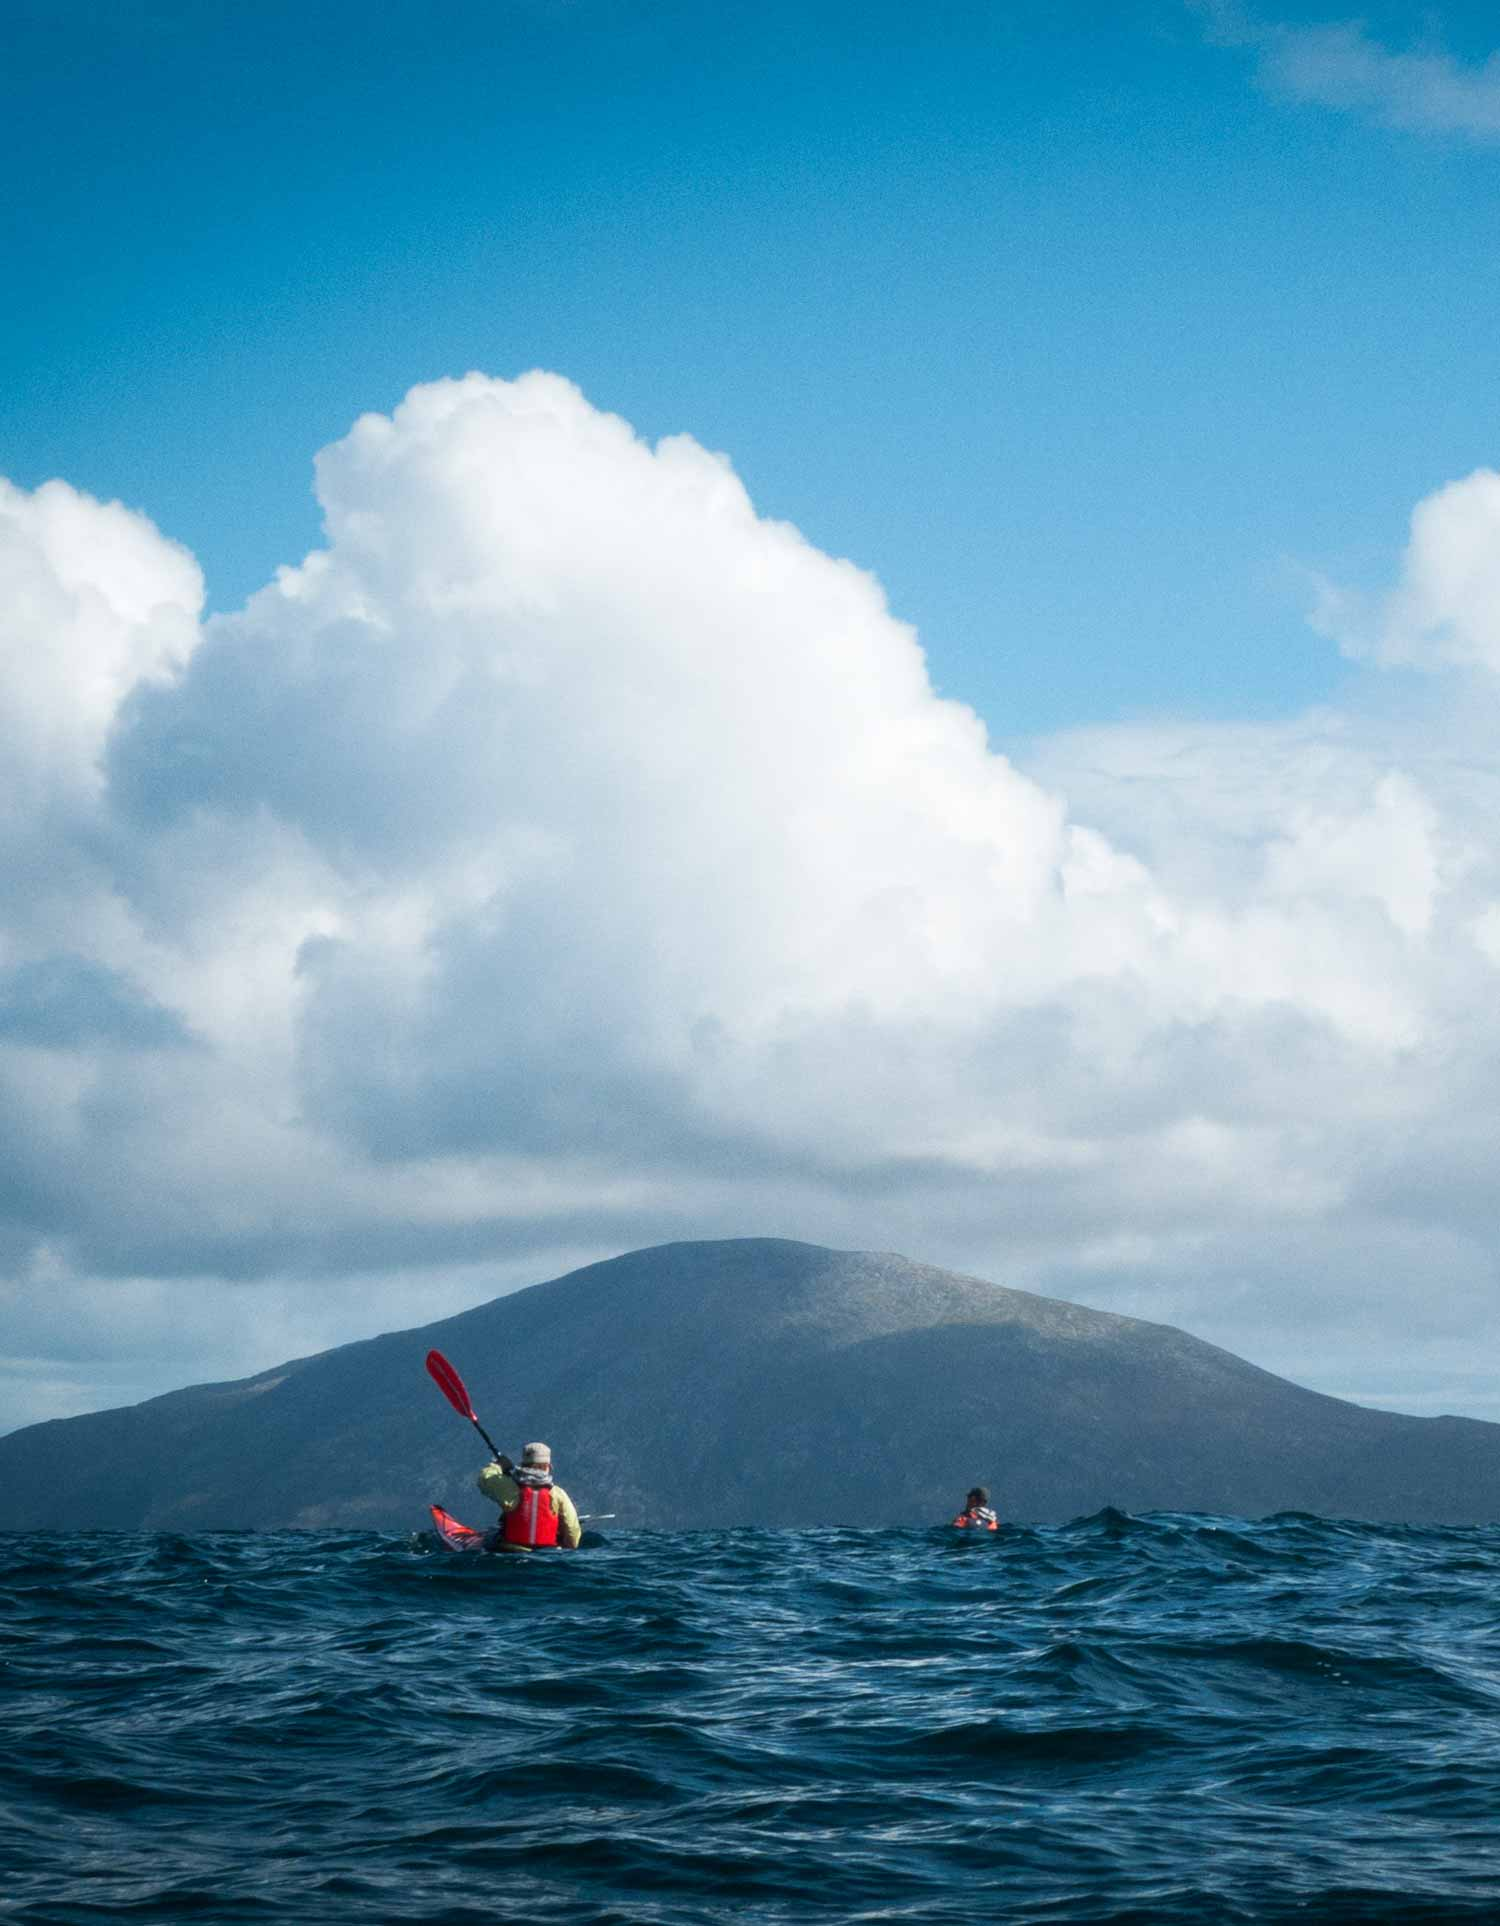 sea kayaks in ocean swells with mountains of Harris